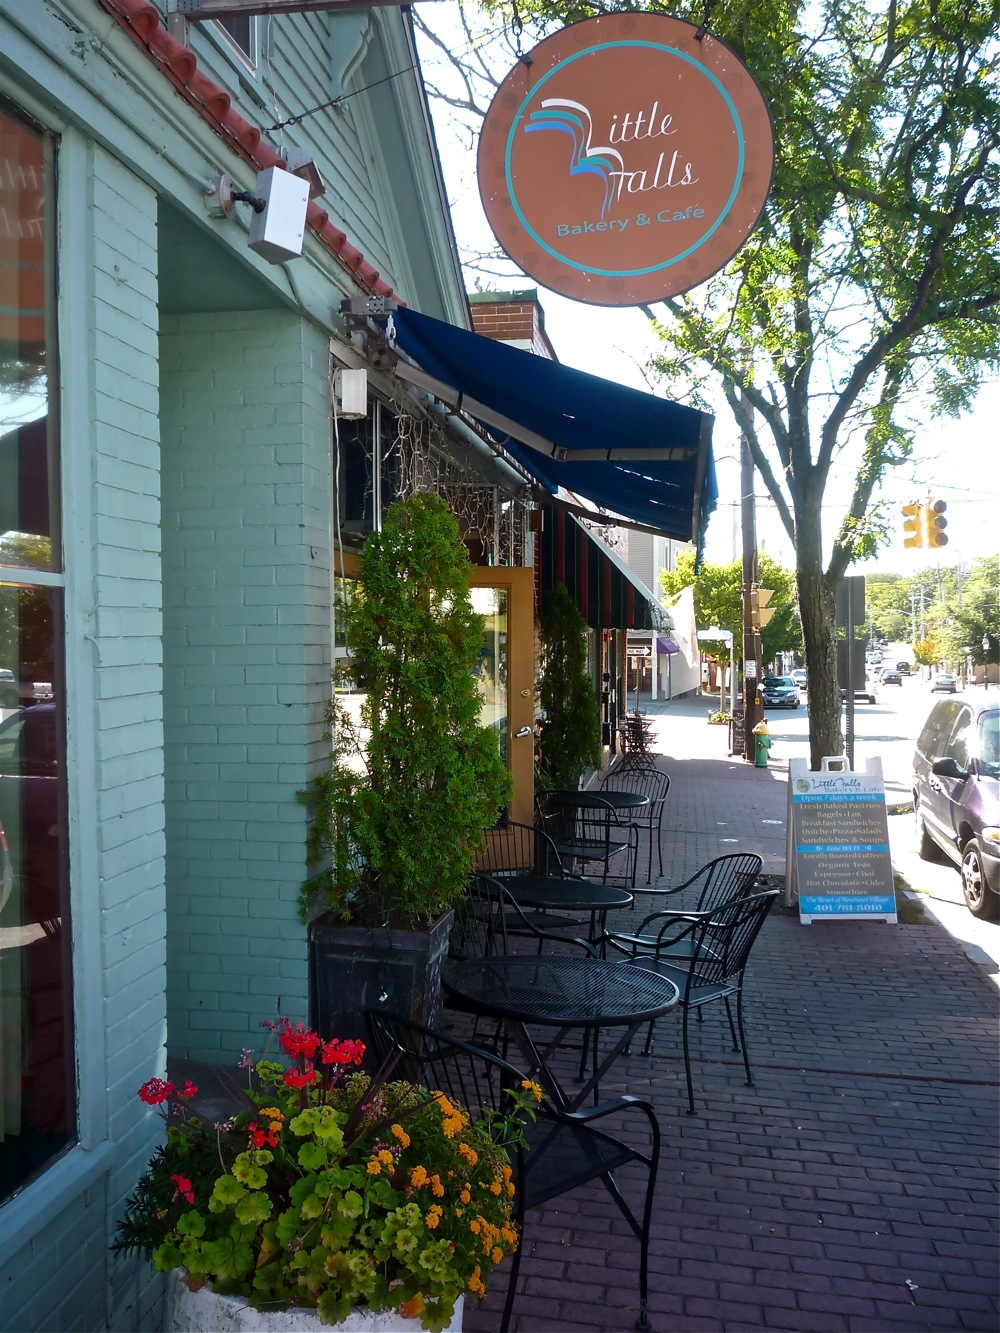 Little Falls Bakery and Cafe, Pawtuxet Village RI